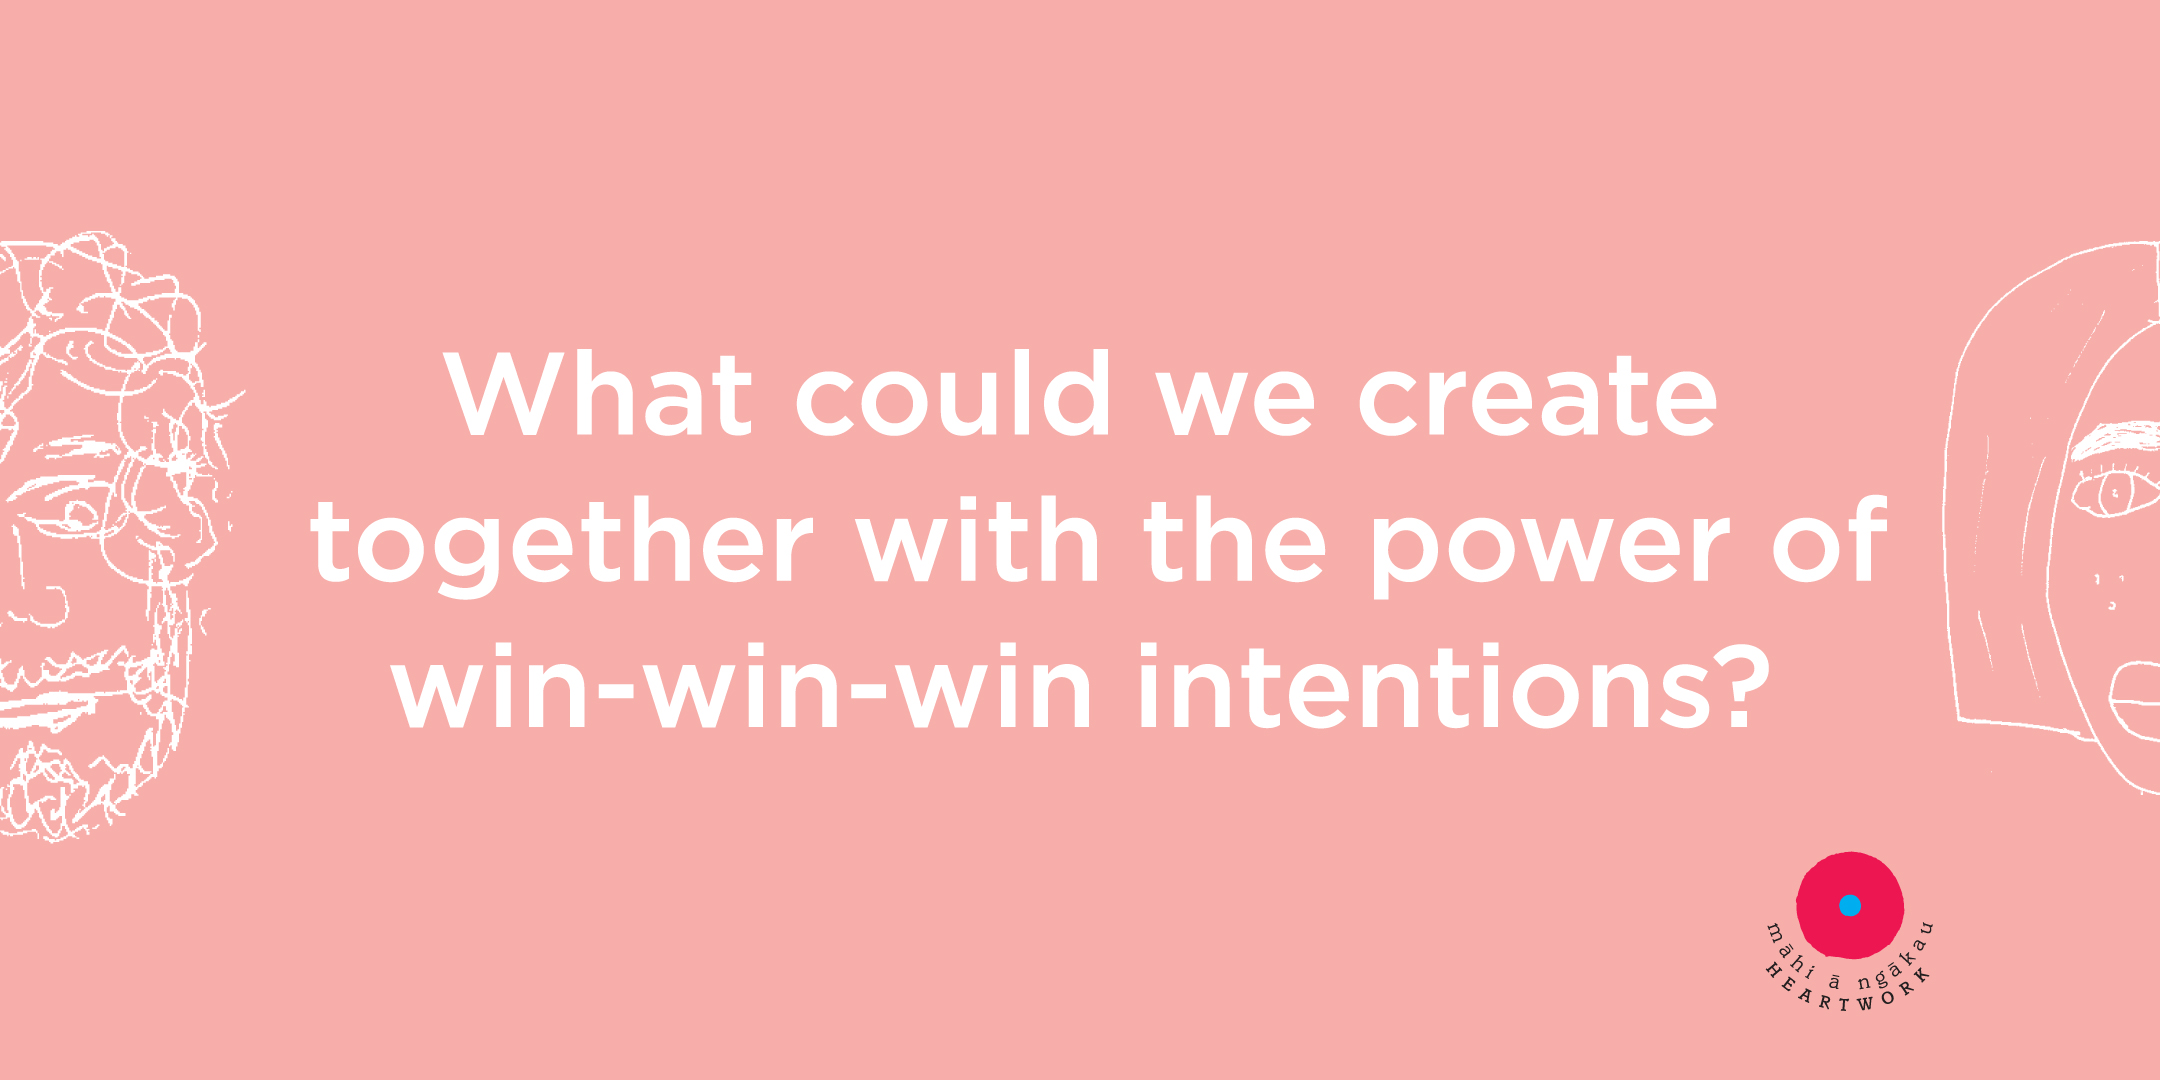 what could we create together with the power of win-win-win intentions